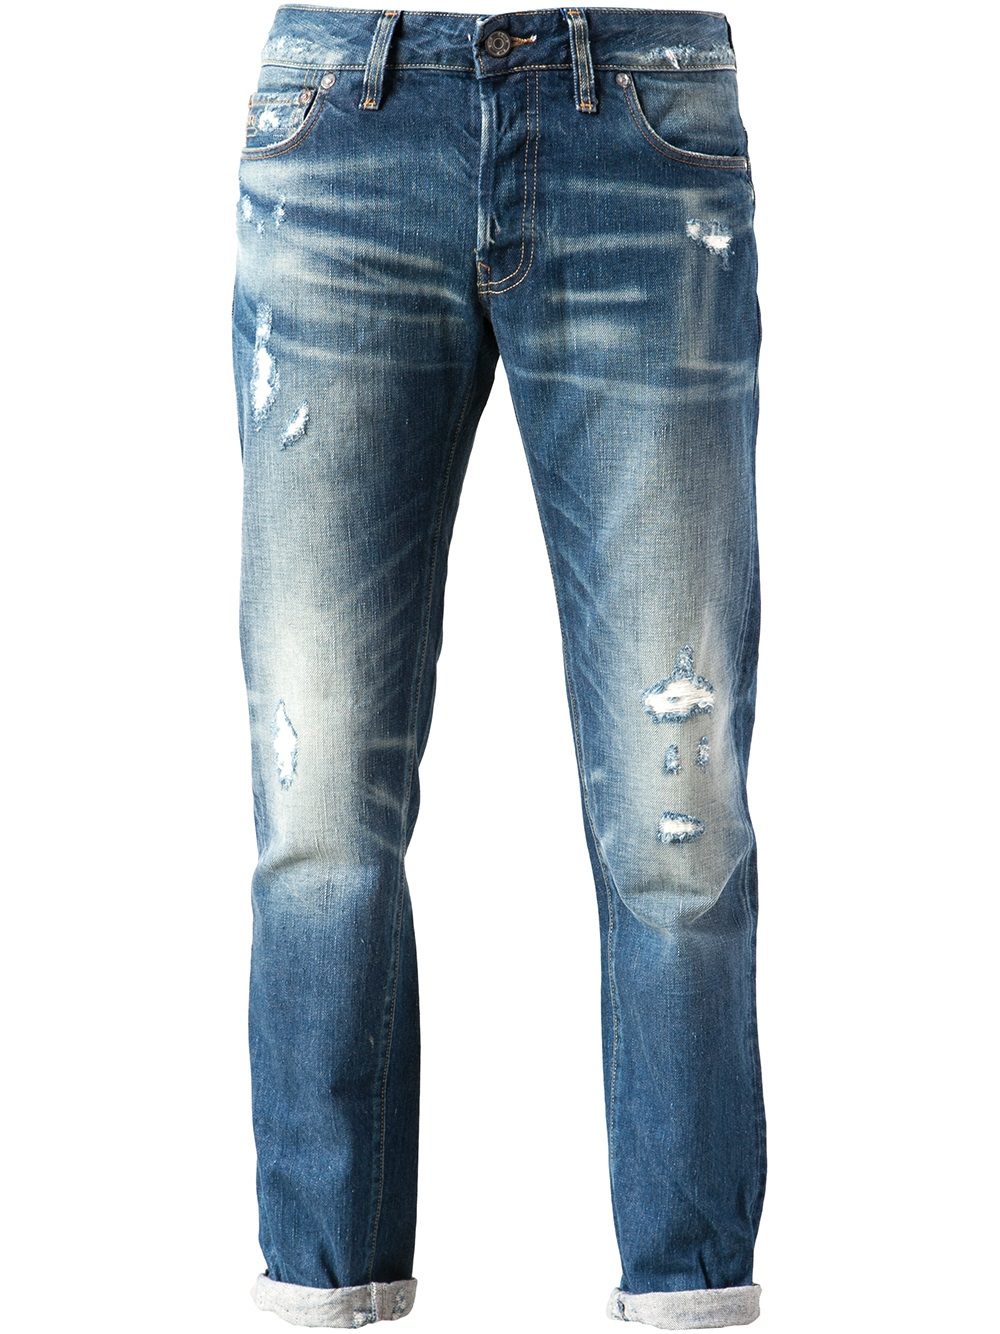 lyst g star raw low tapered jean in blue for men. Black Bedroom Furniture Sets. Home Design Ideas